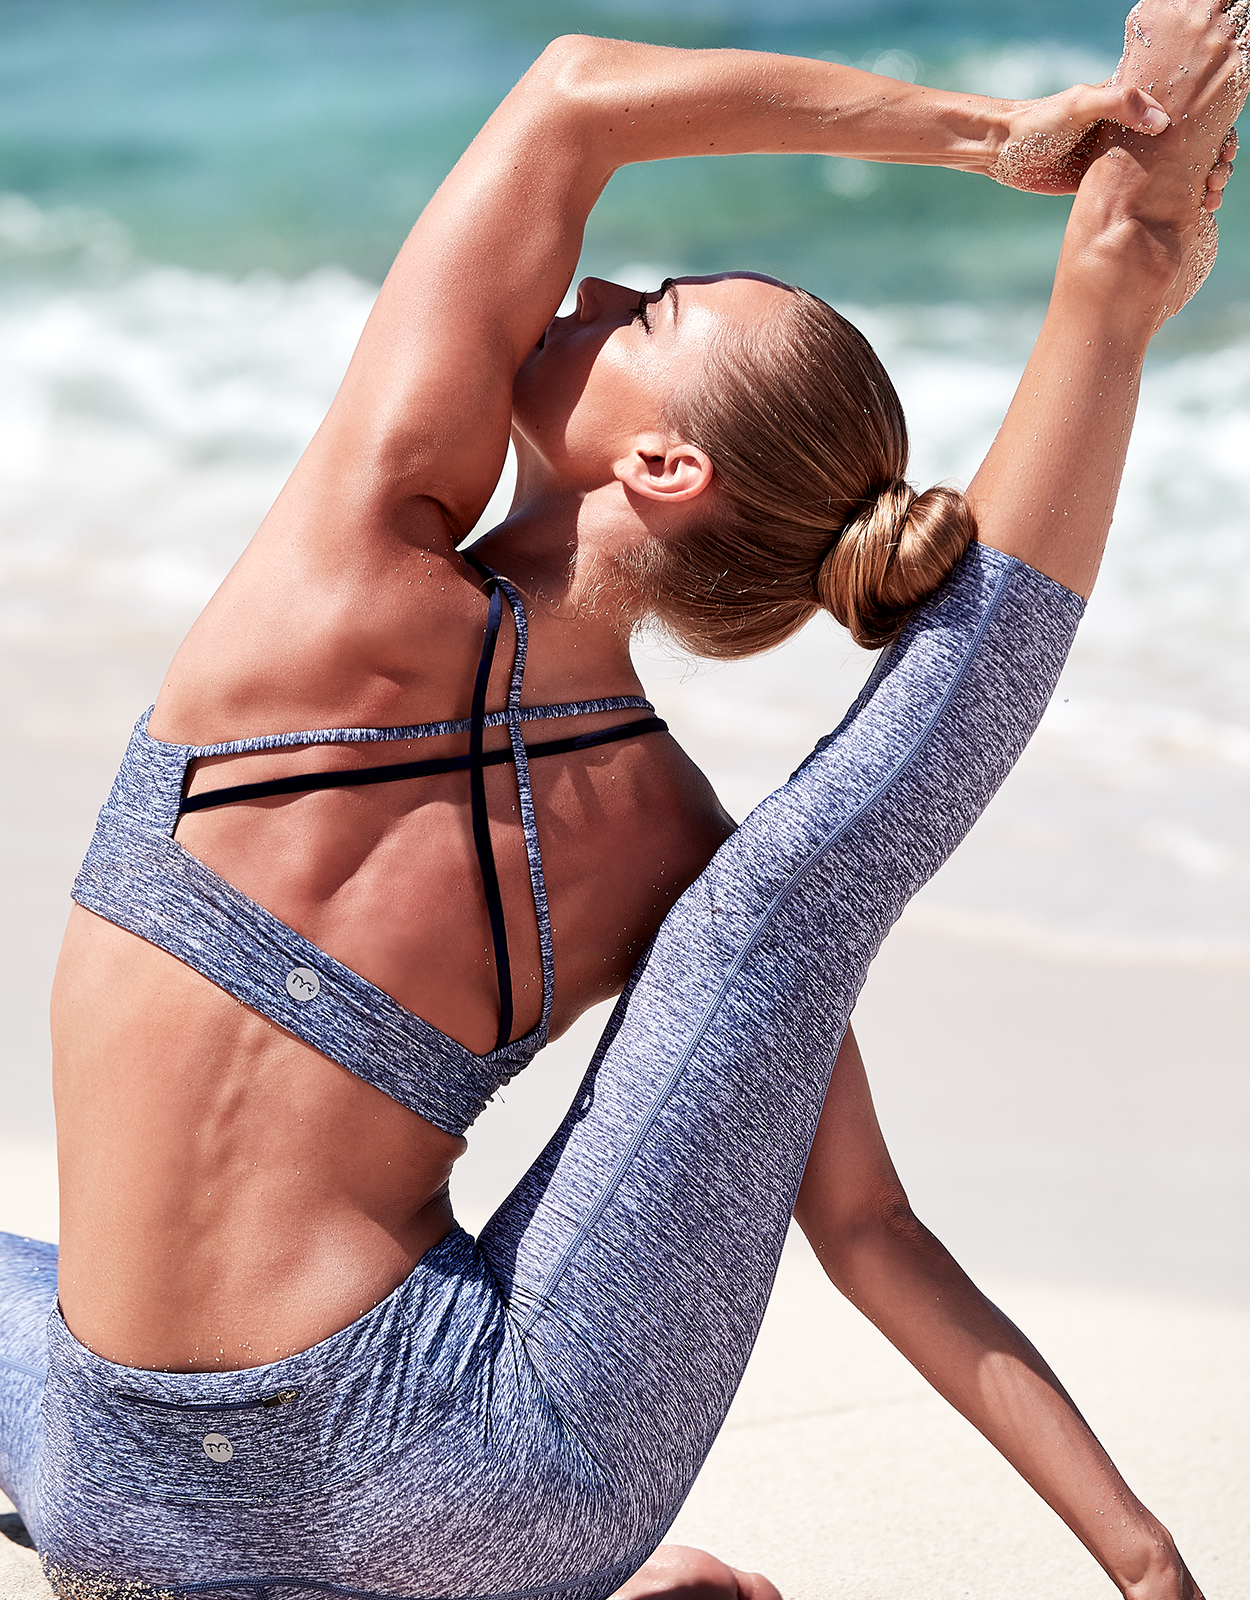 Shop The Look - Mantra Brooke Bralette & Mantra ¾ Kalani Tight